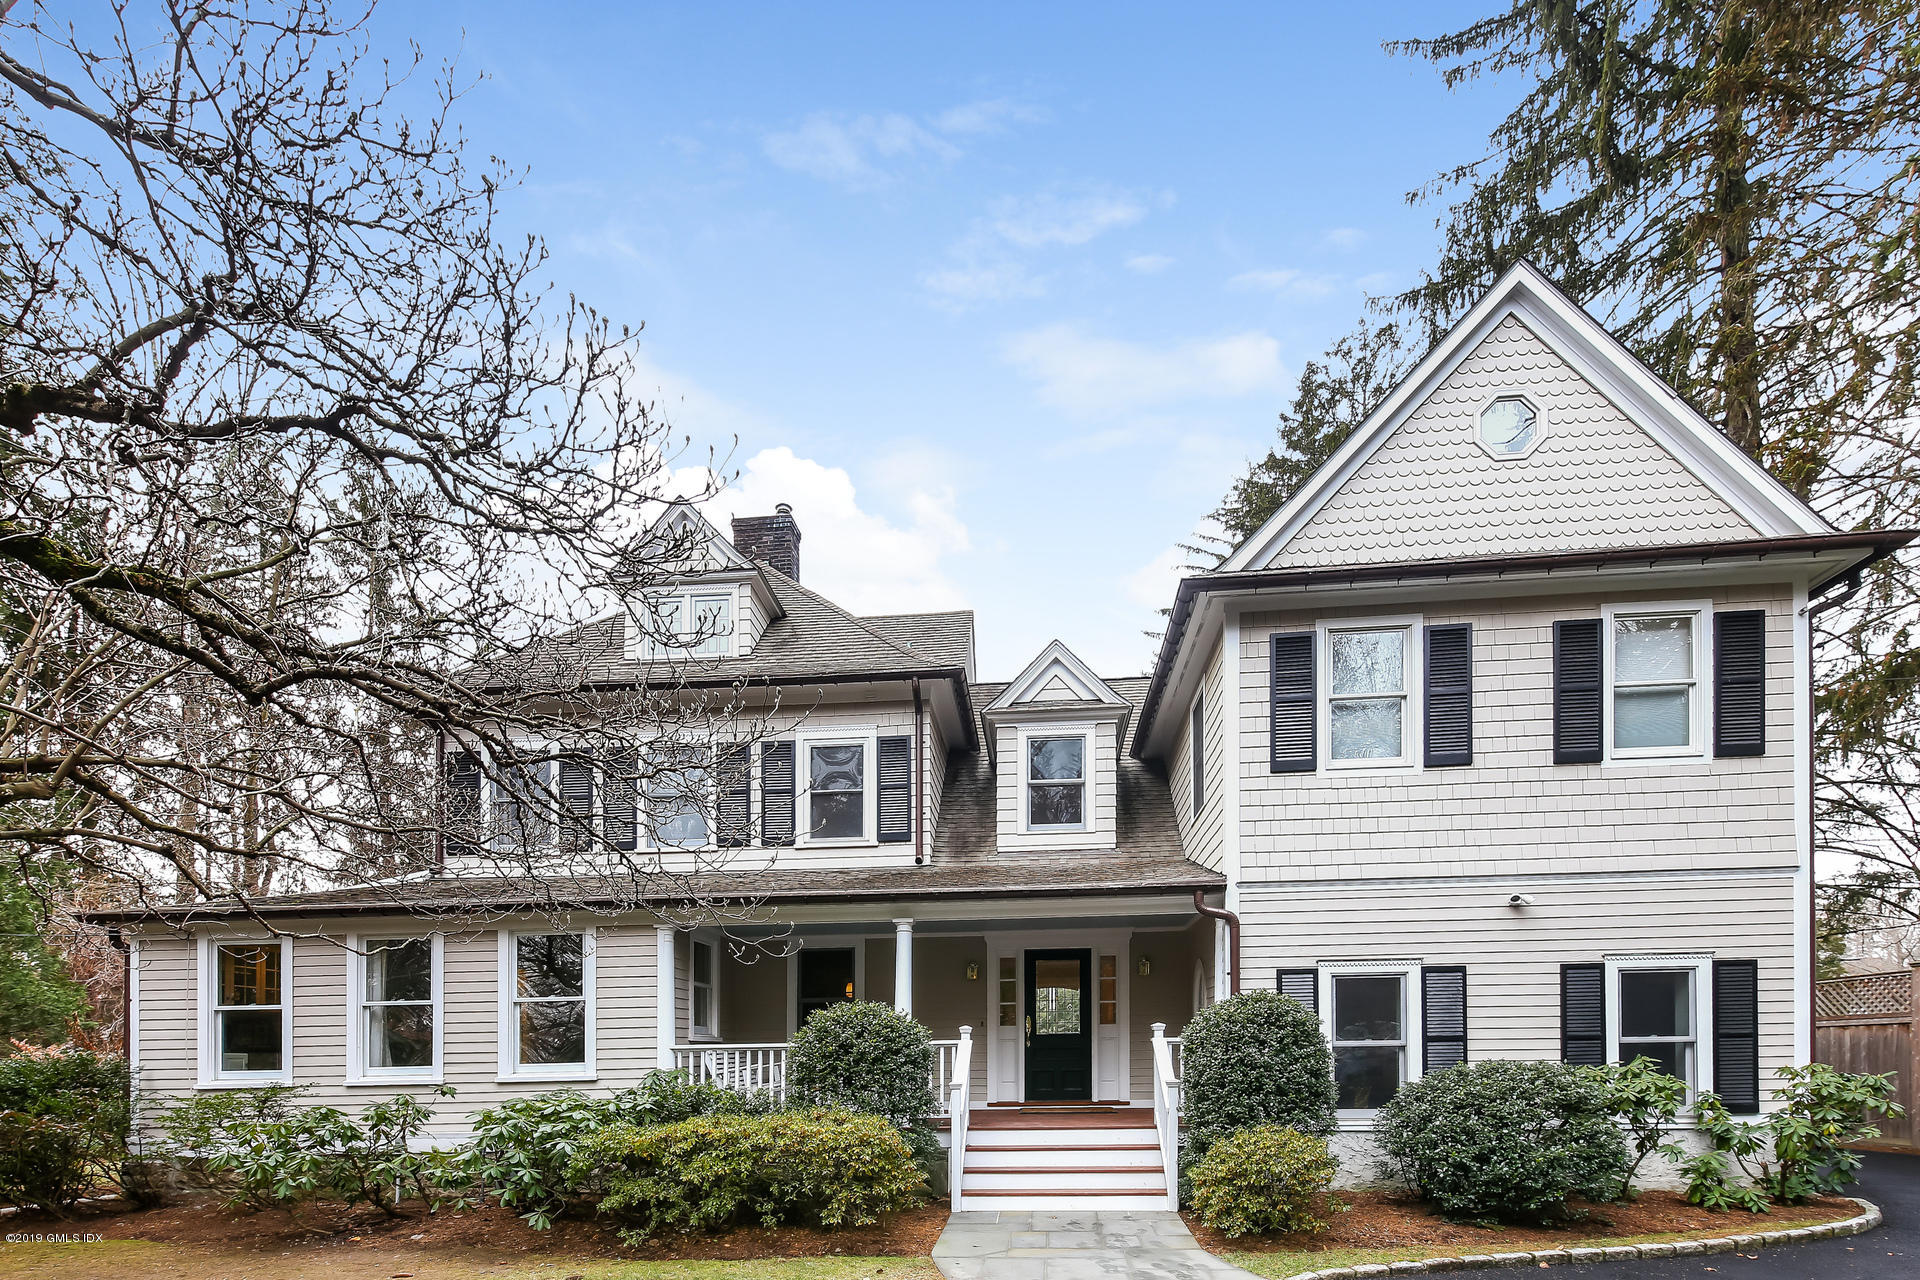 369 North Street,Greenwich,Connecticut 06830,5 Bedrooms Bedrooms,3 BathroomsBathrooms,Single family,North,105242